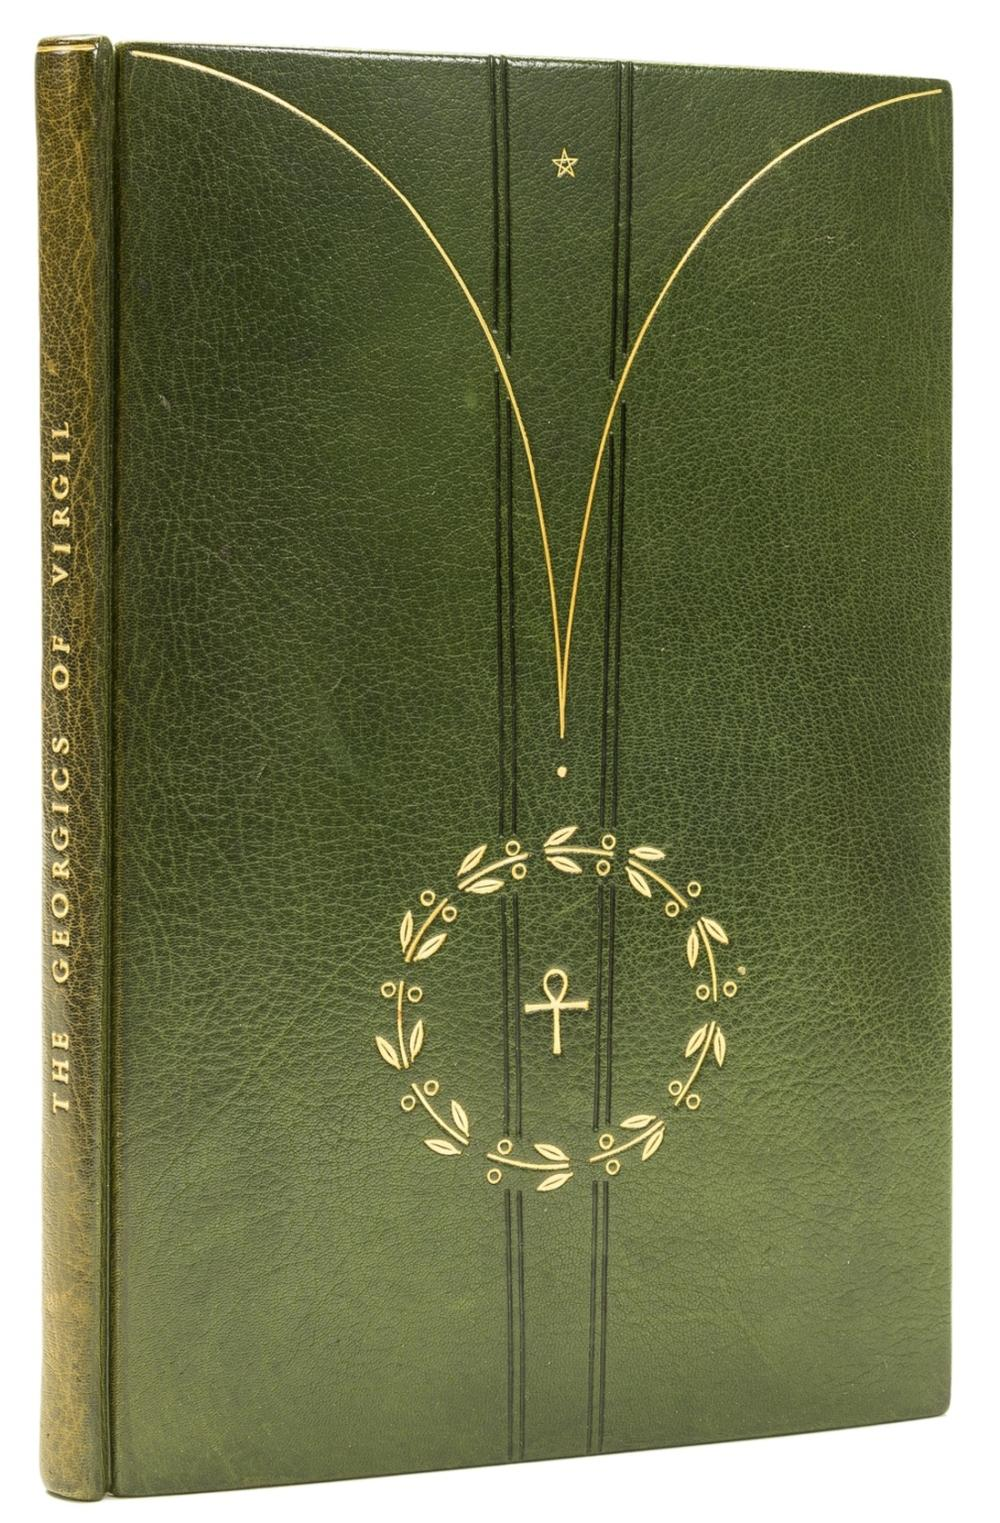 Powell (Roger, binder).- Virgilius Maro (Publius) The Georgics, bound in green goatskin tooled in gilt, by Roger Powell, 8vo, 1948.